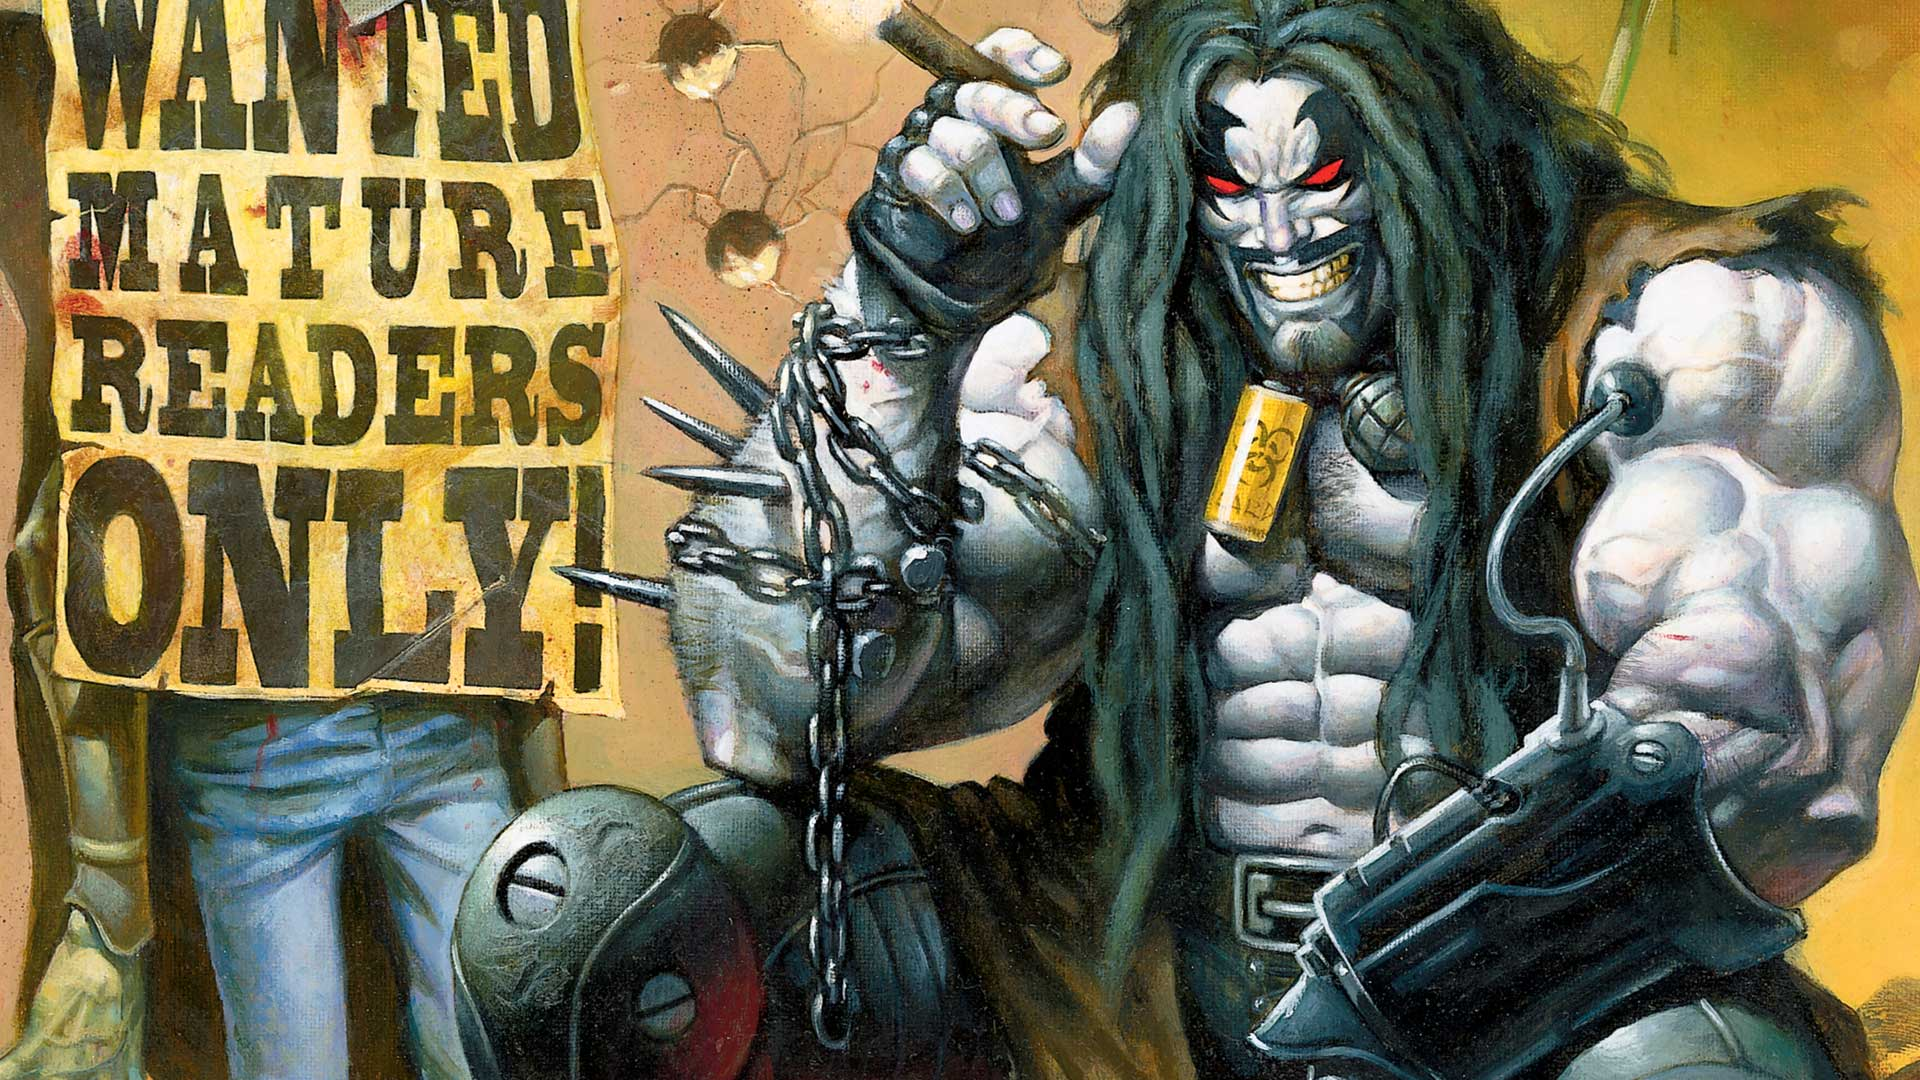 Lobo Movie - DC Comics / Warner Bros.